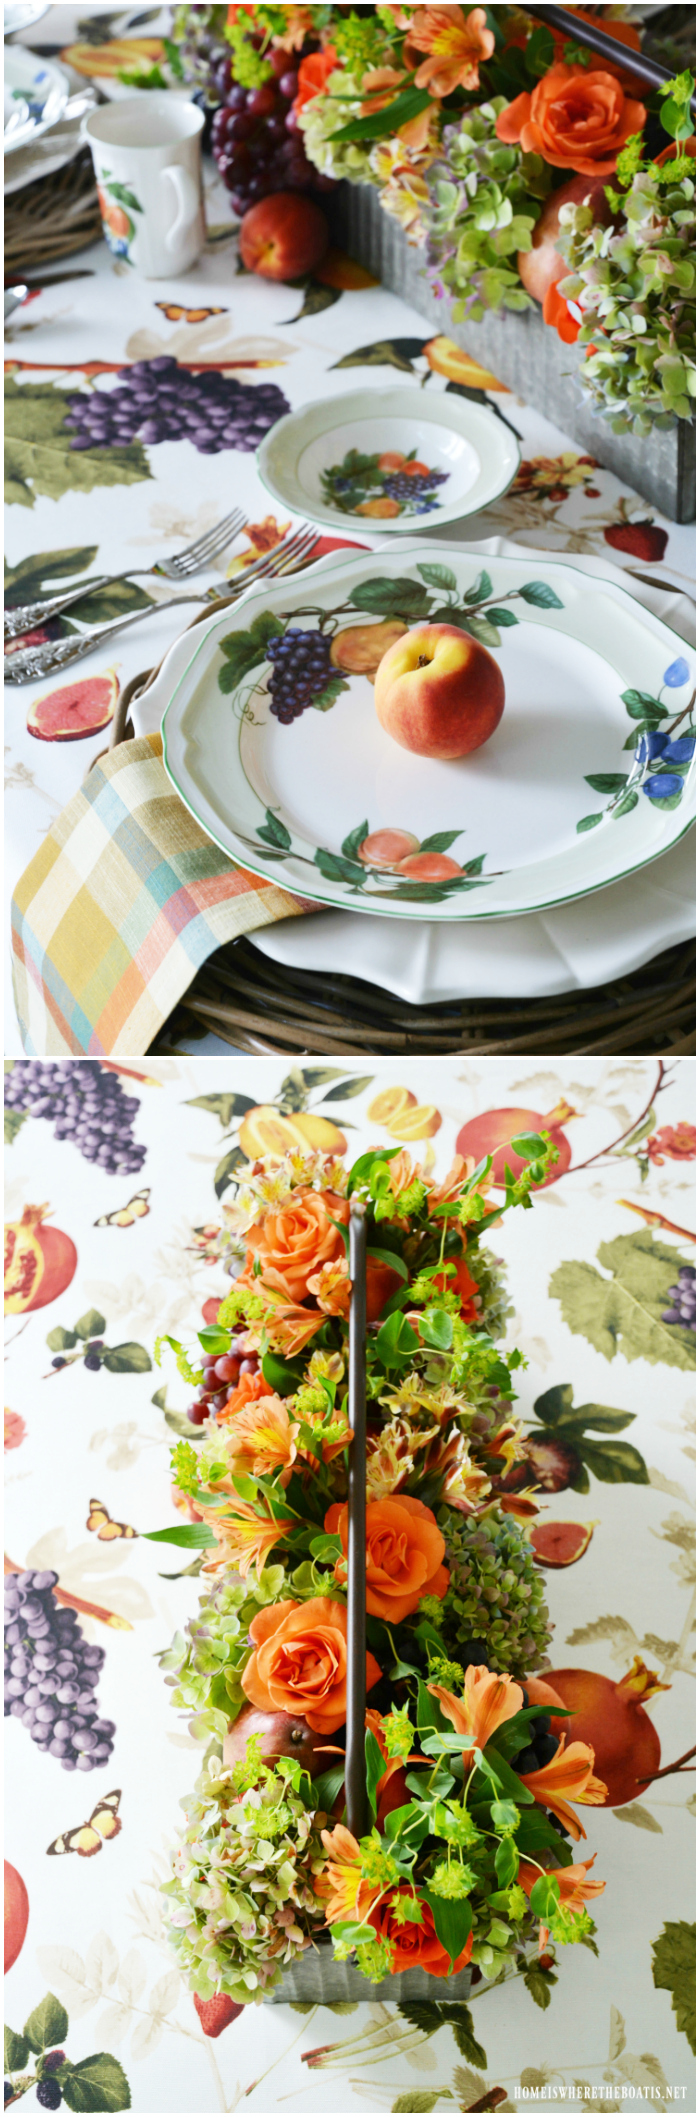 Celebrate summer and create an arrangement and centerpiece for your table using fruit and flowers with these easy shortcuts and tips, no floral foam required.